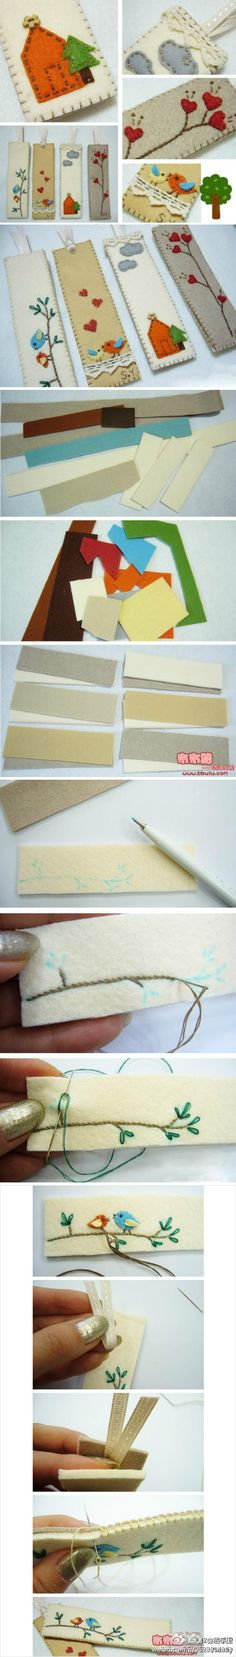 DIY hand-stitched bookmarks (Chinese site) - Very cute. I think there are some good ideas here for embellishing clothing.